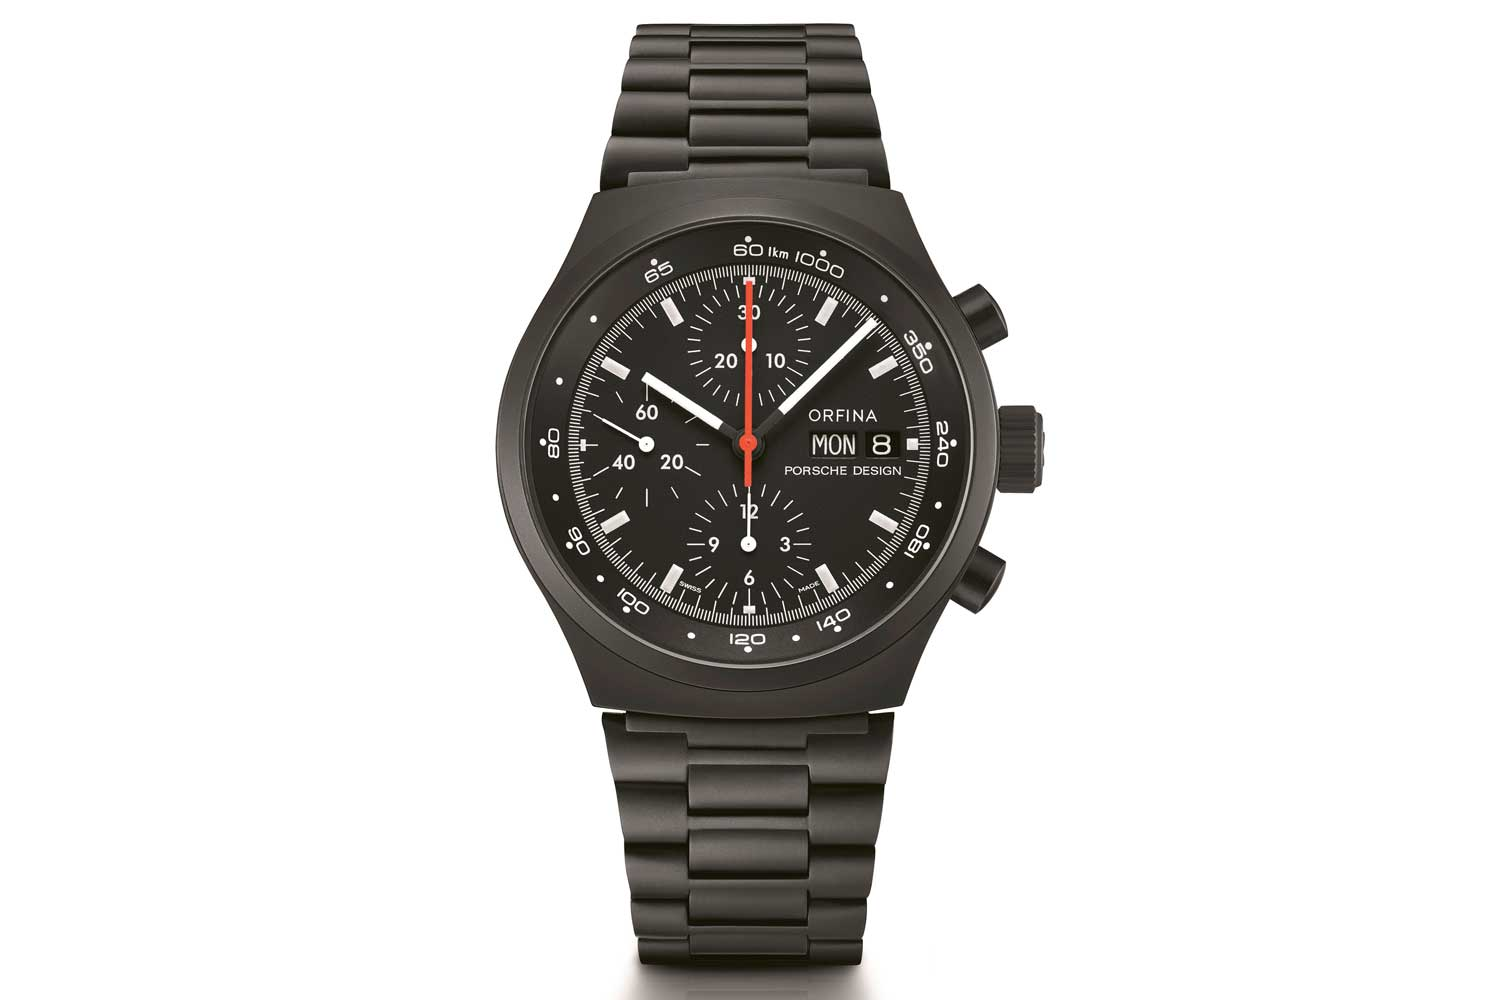 The Porsche Design Chronograph 1 was the world's first blacked out watch.